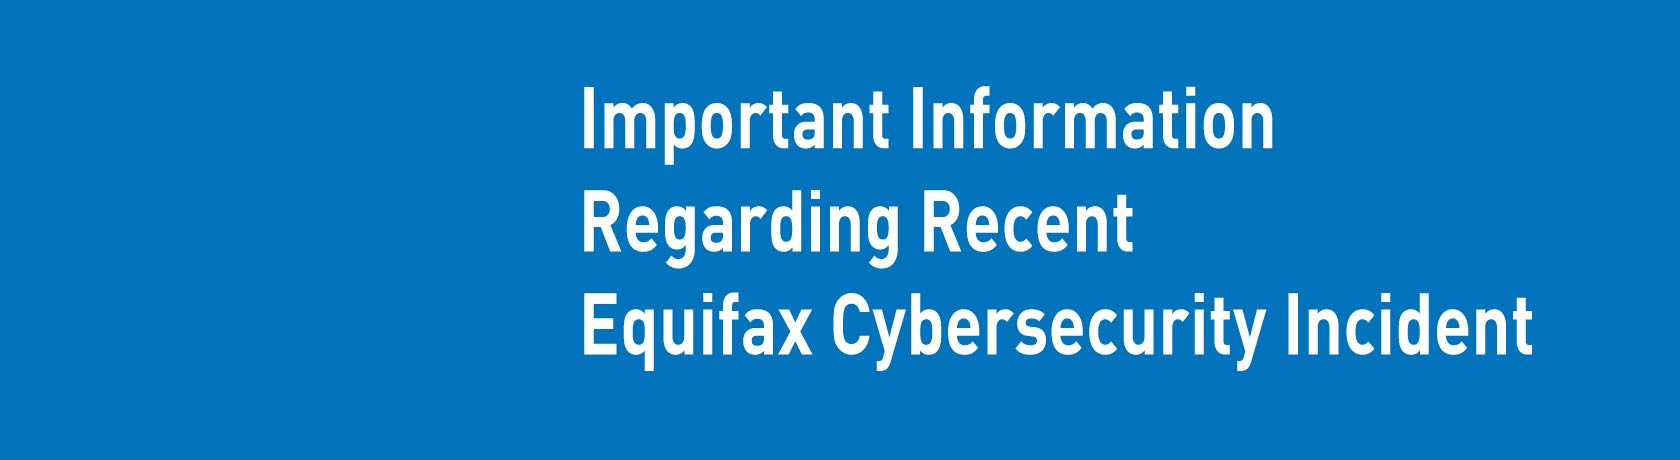 Important information regarding recent Equifax cybersecurity incident.